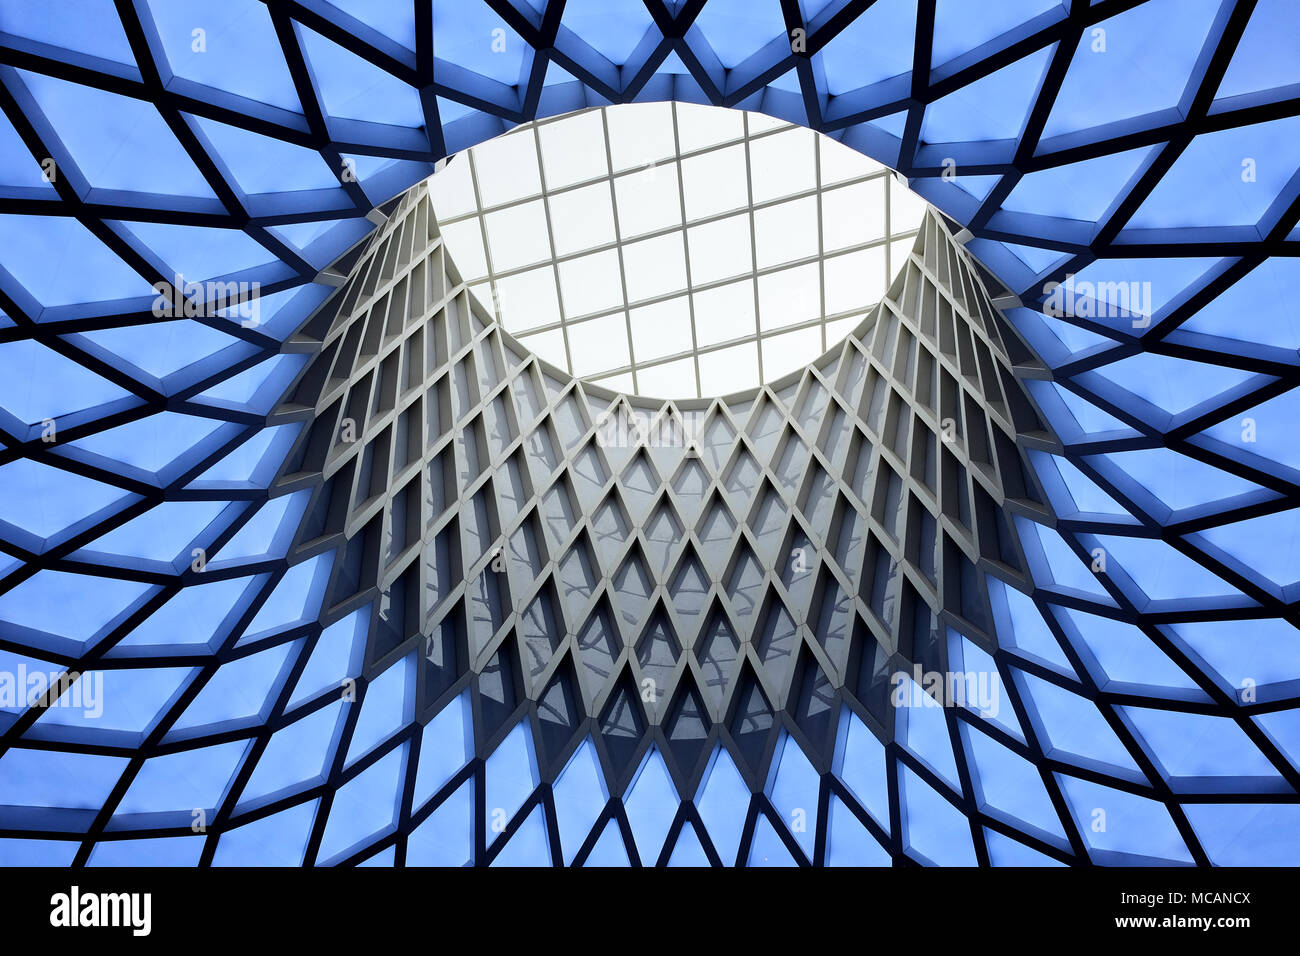 Leeds, West Yorkshire / UK - April 13th 2018: Roof structure of a  sky light in the Victoria Gate shopping centre in Leeds, Yorkshire. UK. - Stock Image